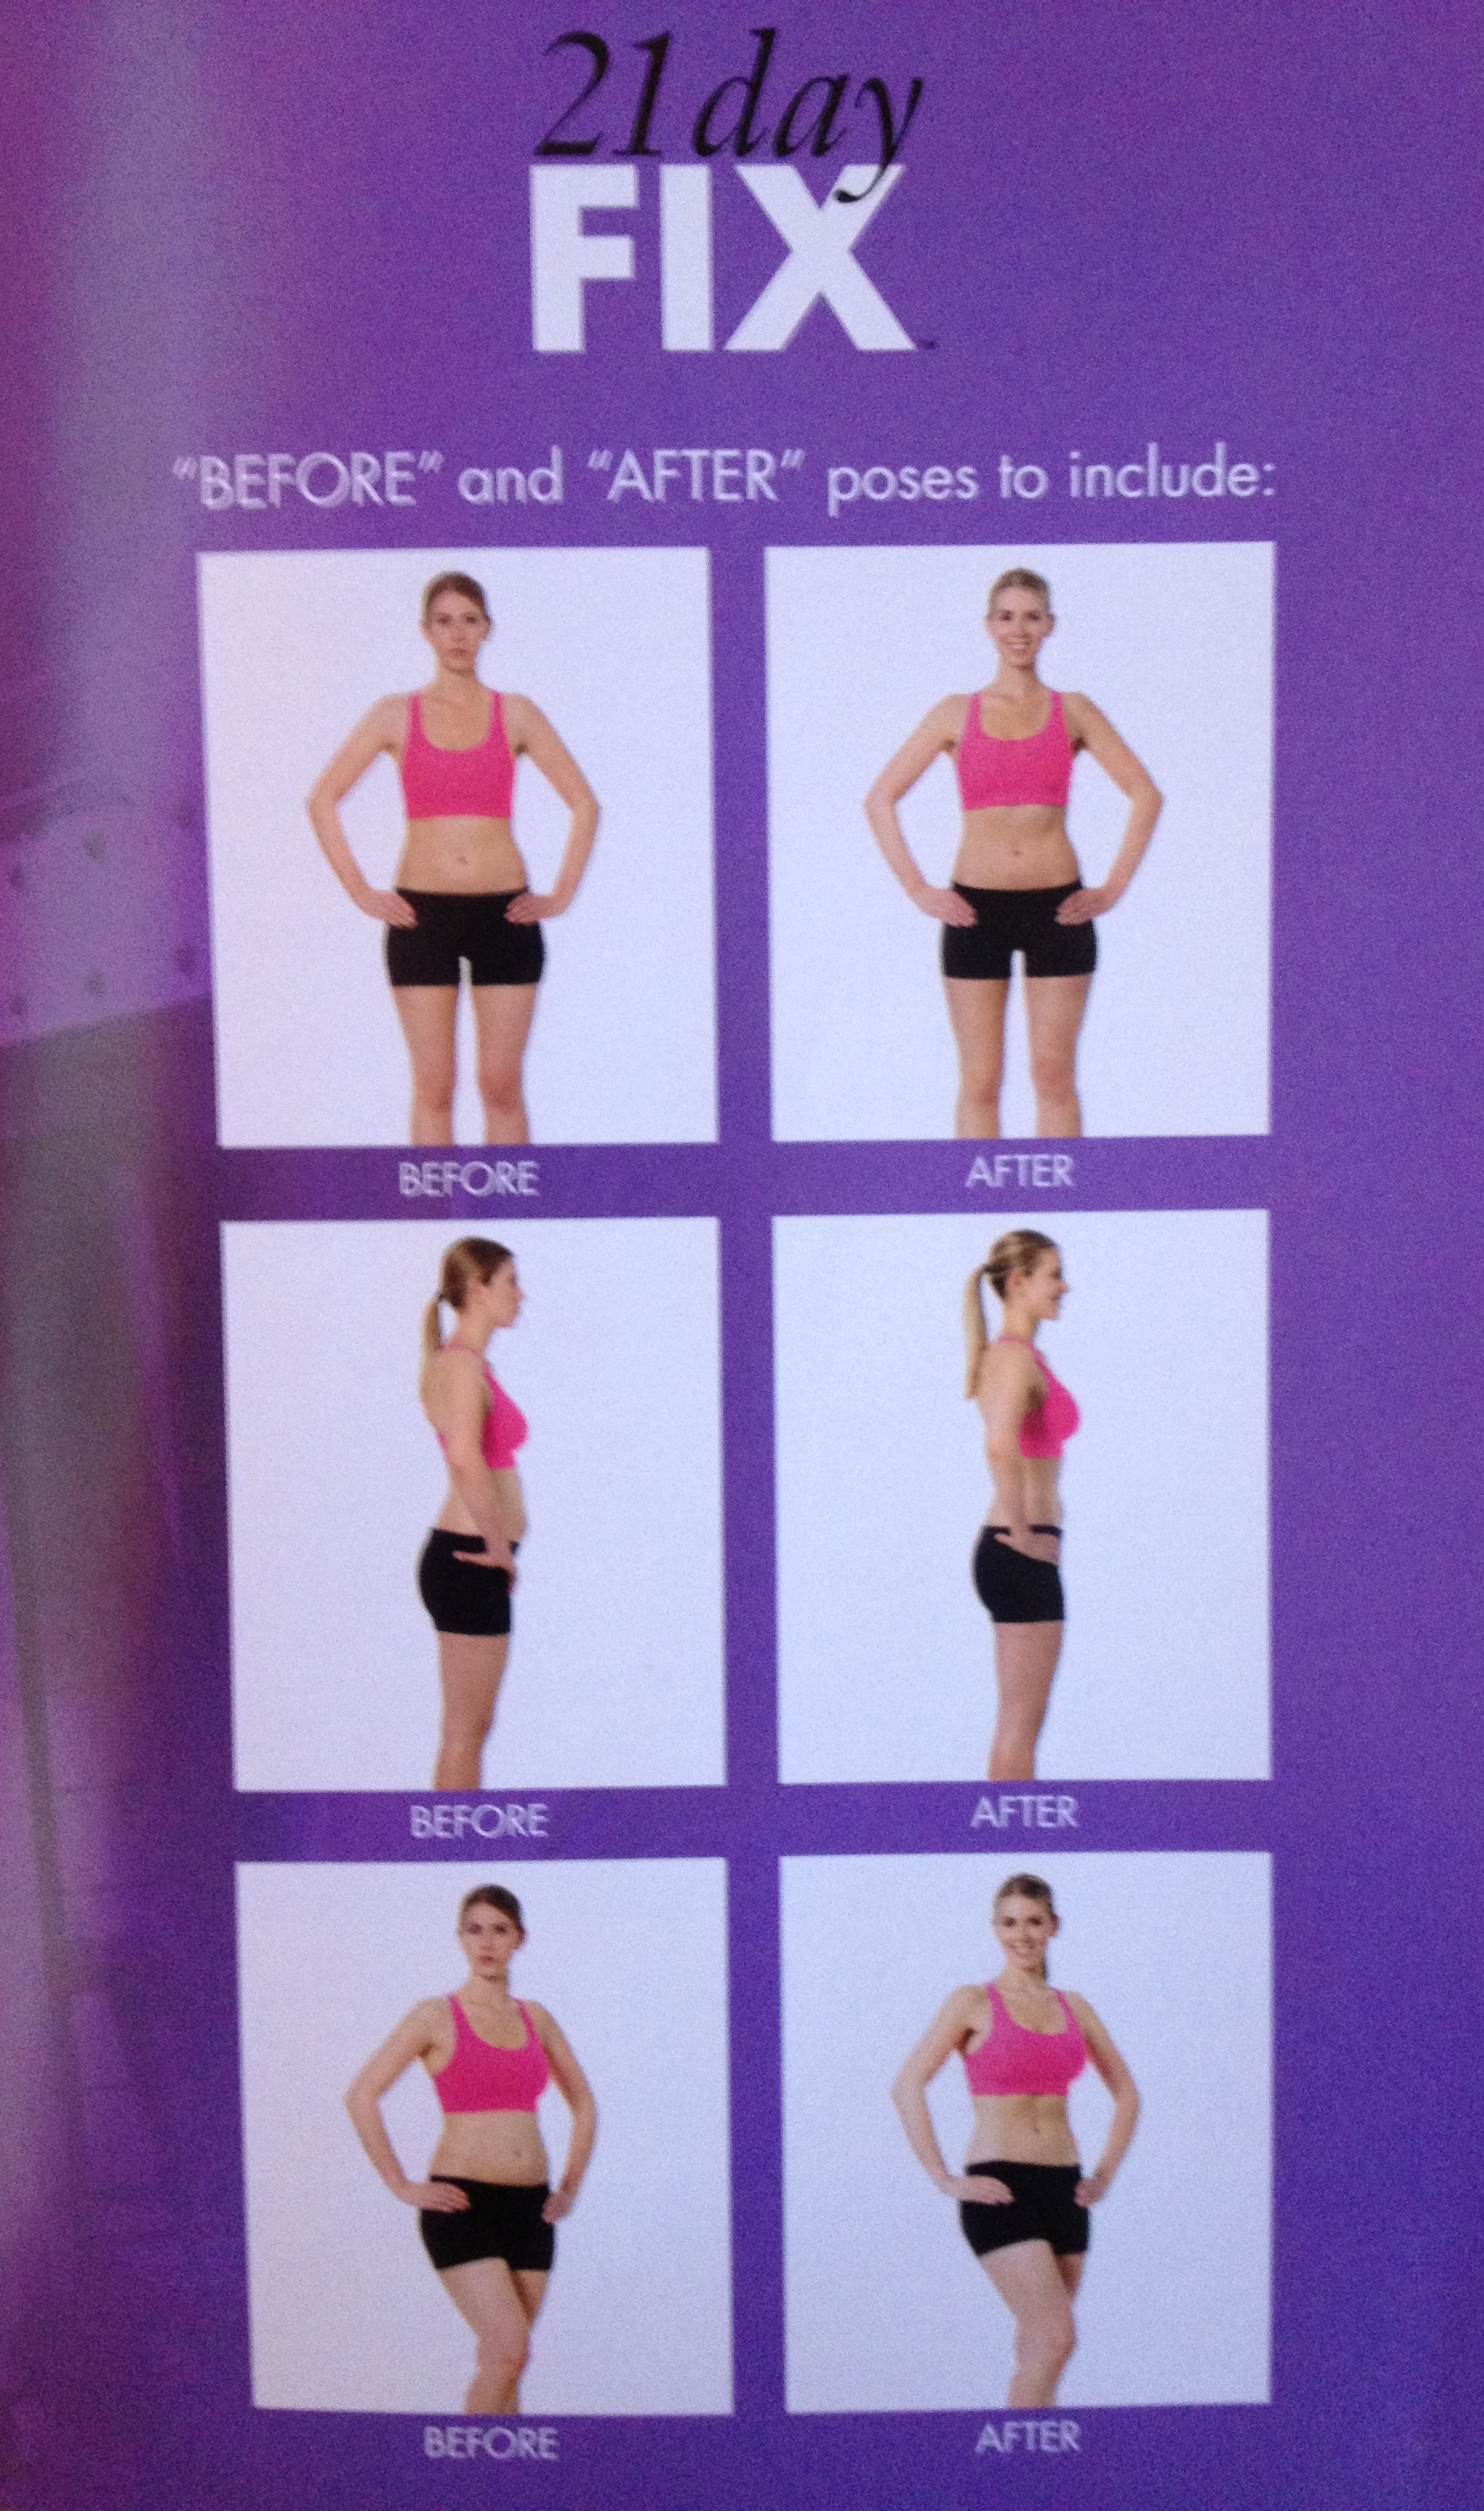 How to Take Before Fitness Pictures